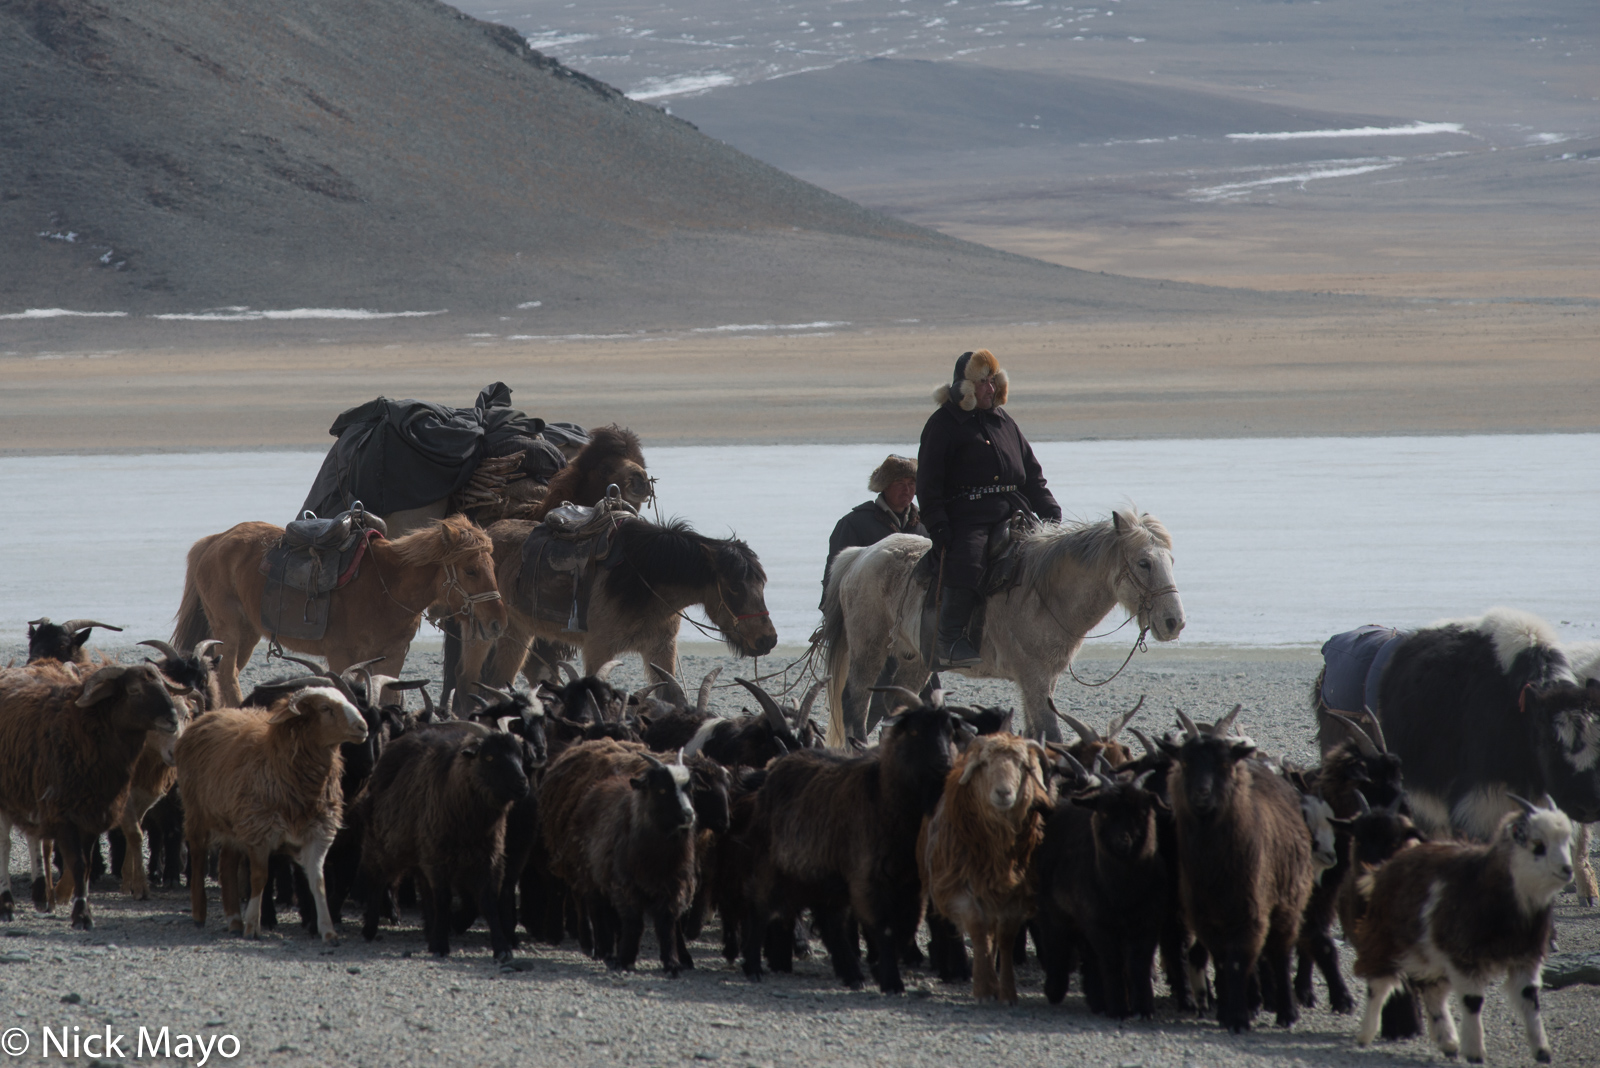 Bayan-Ölgii, Camel, Goat, Herding, Horse, Kazakh, Mongolia, Pack Animal, Sheep, photo